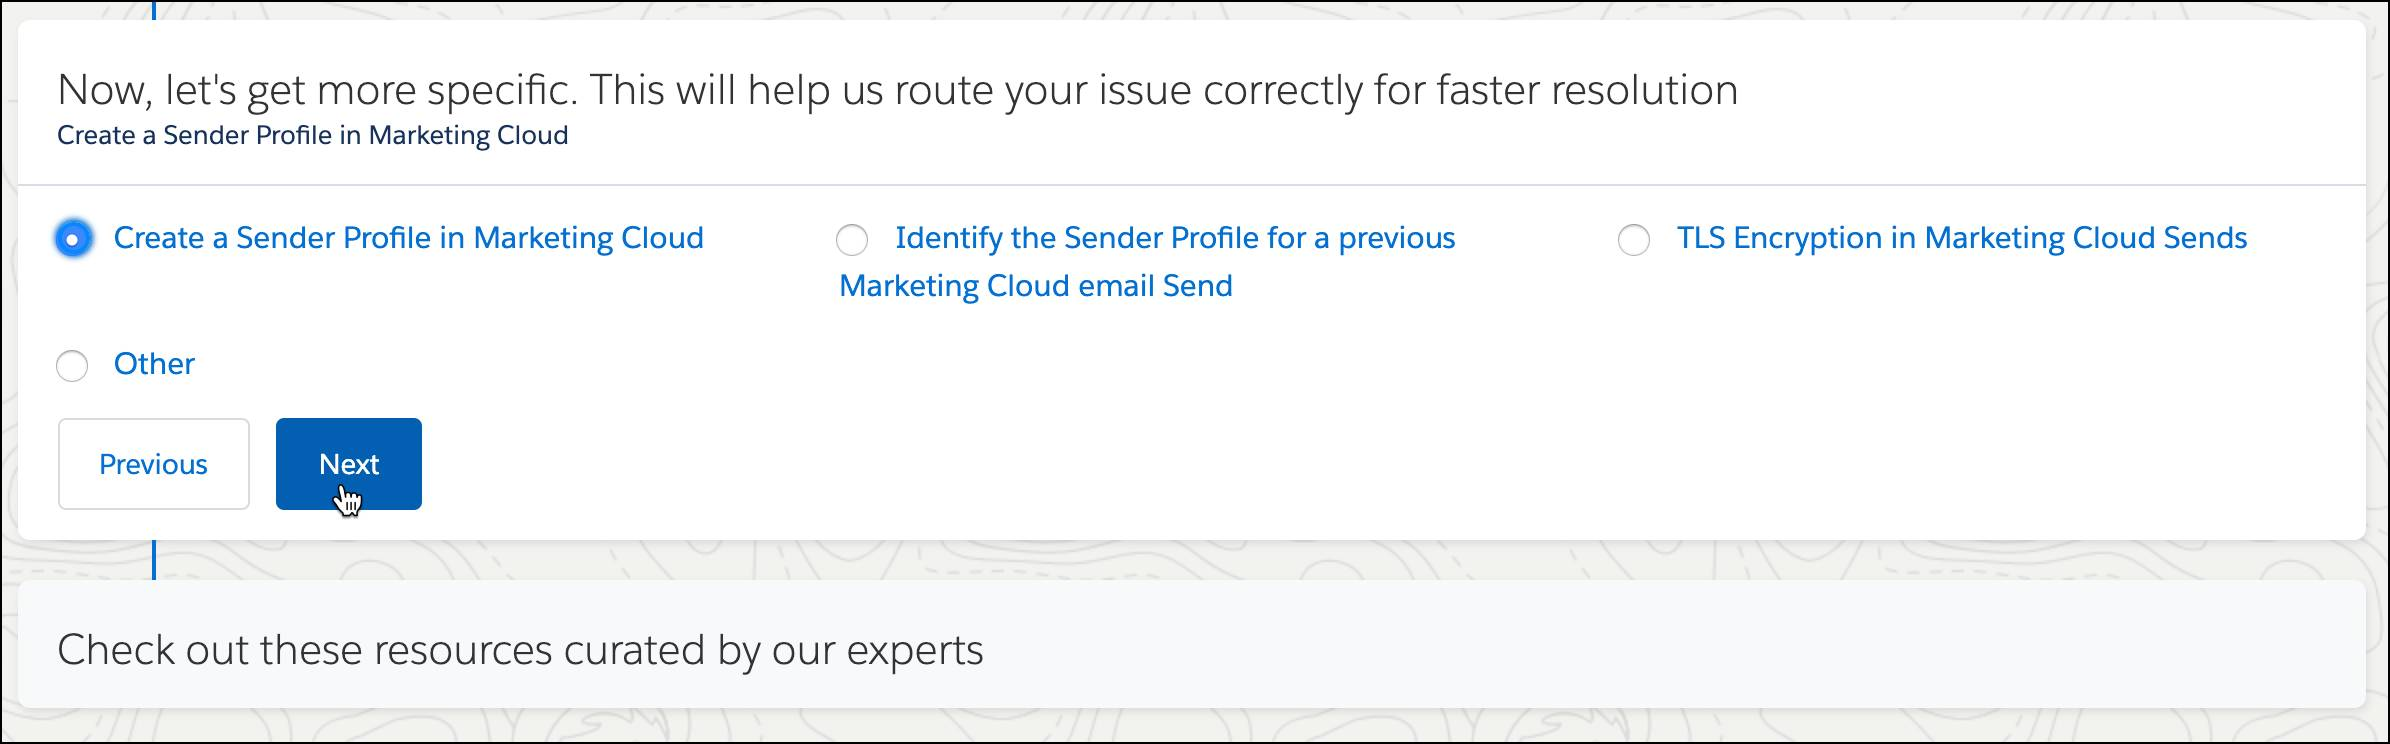 Specific topic screen with the Create a Sender Profile in Marketing Cloud radio button selected.